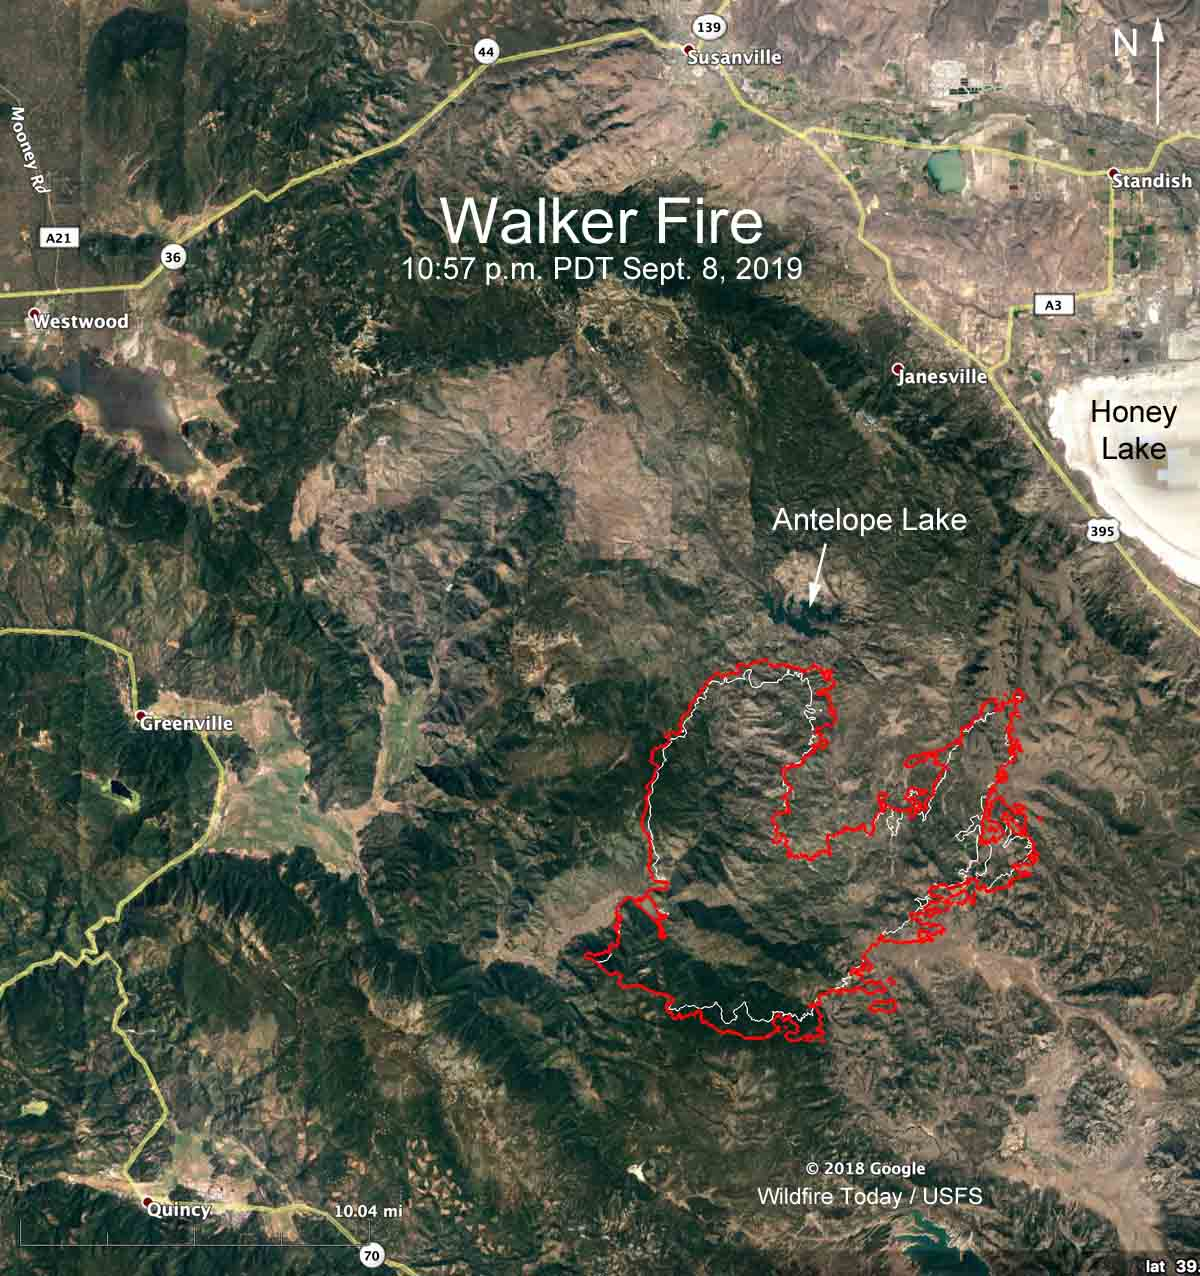 Walker Fire Susanville California